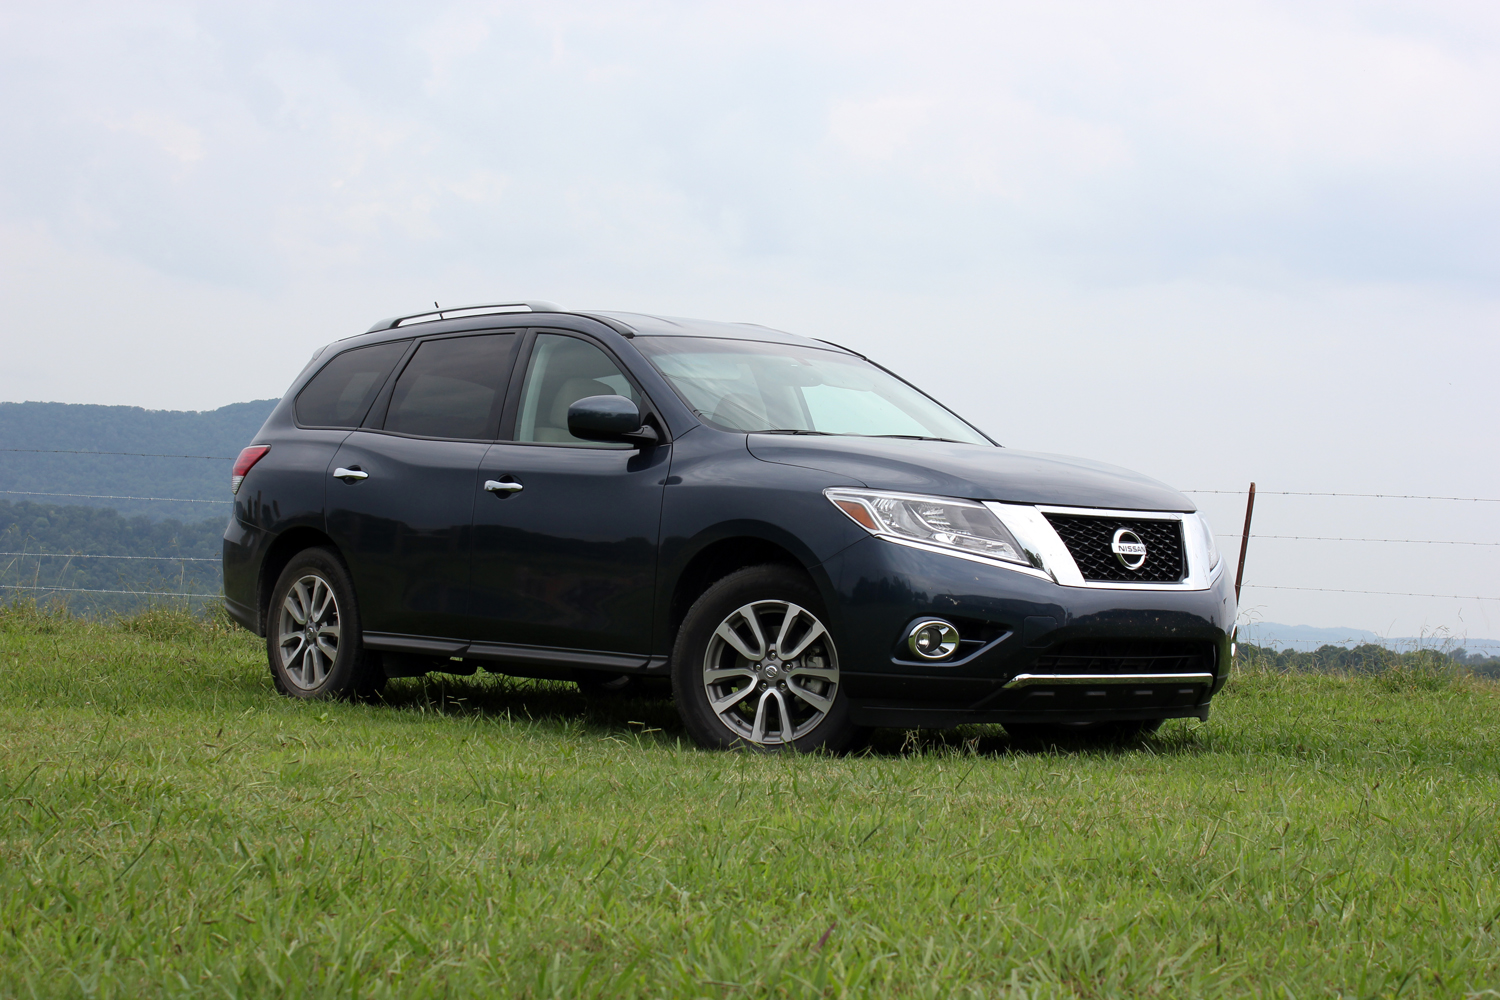 2019 Nissan Pathfinder photo - 5